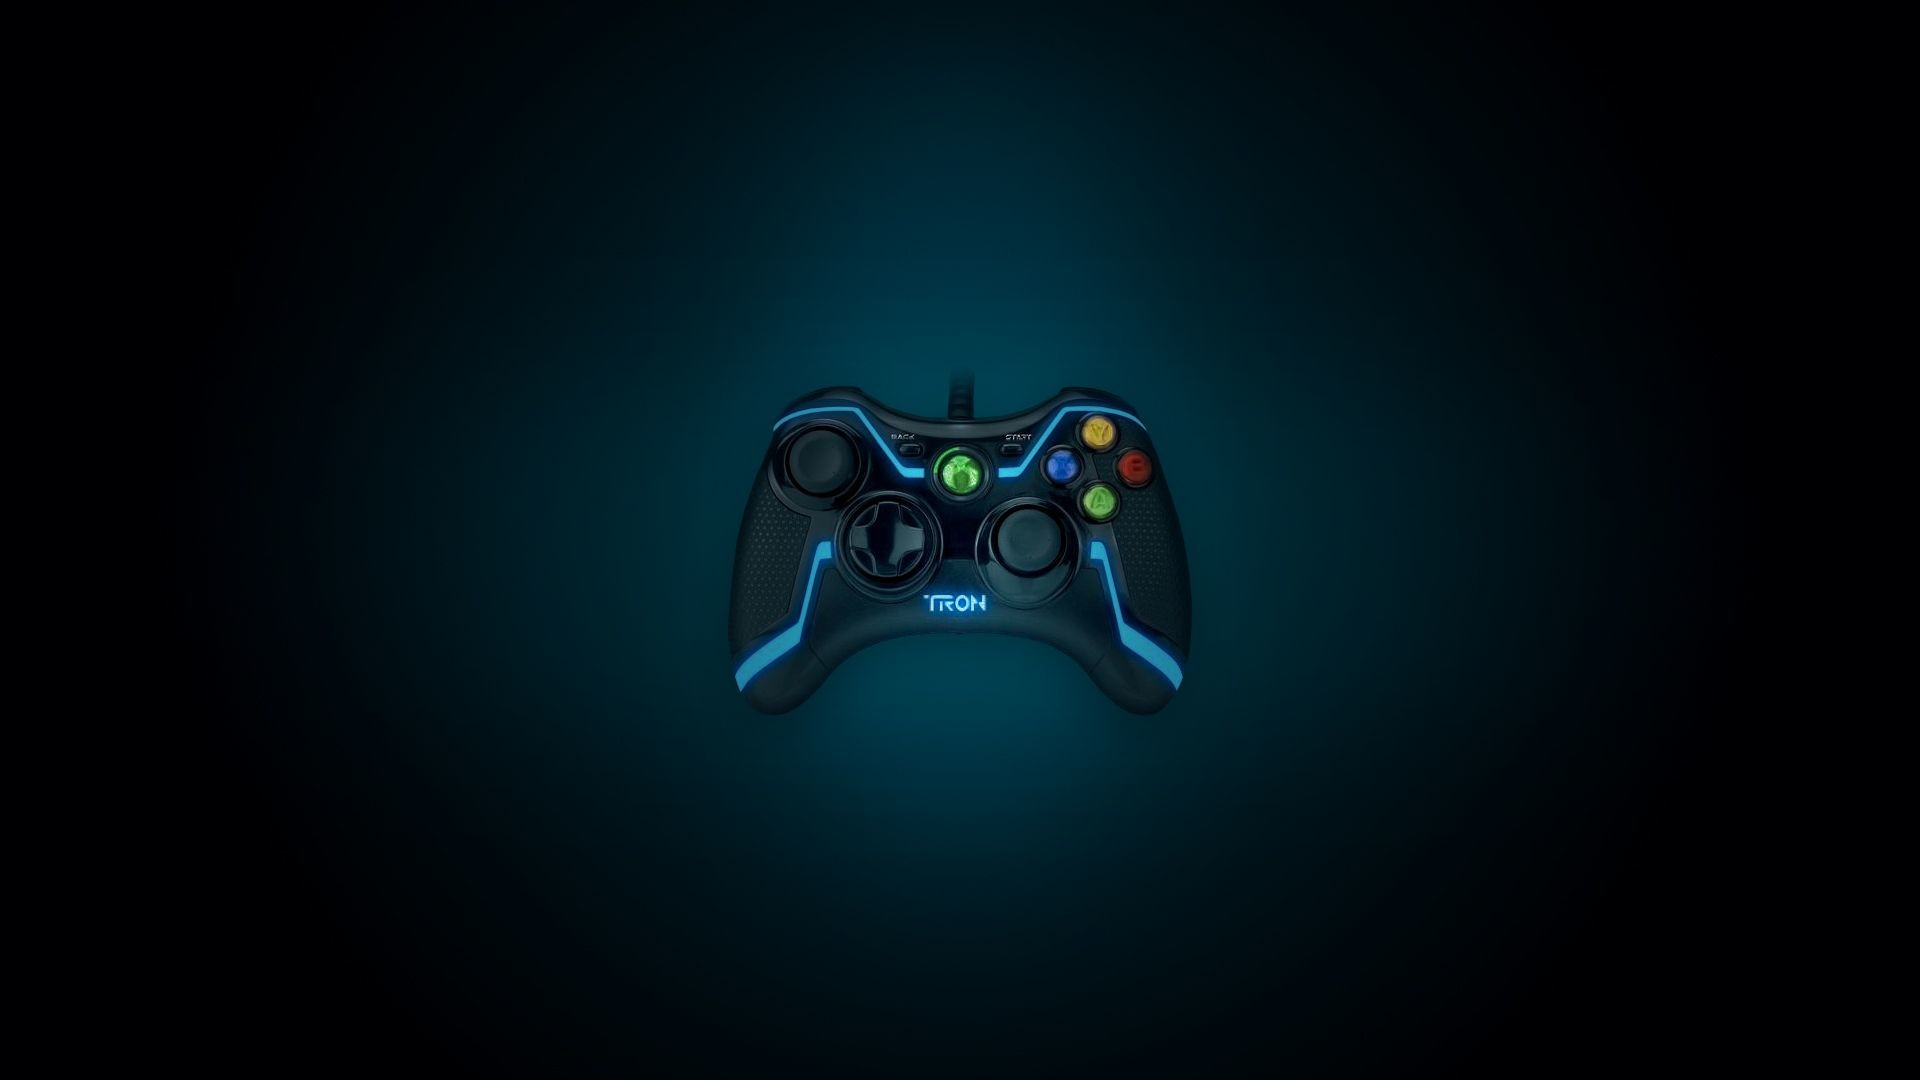 Gaming Controllers Wallpaper High Resolution